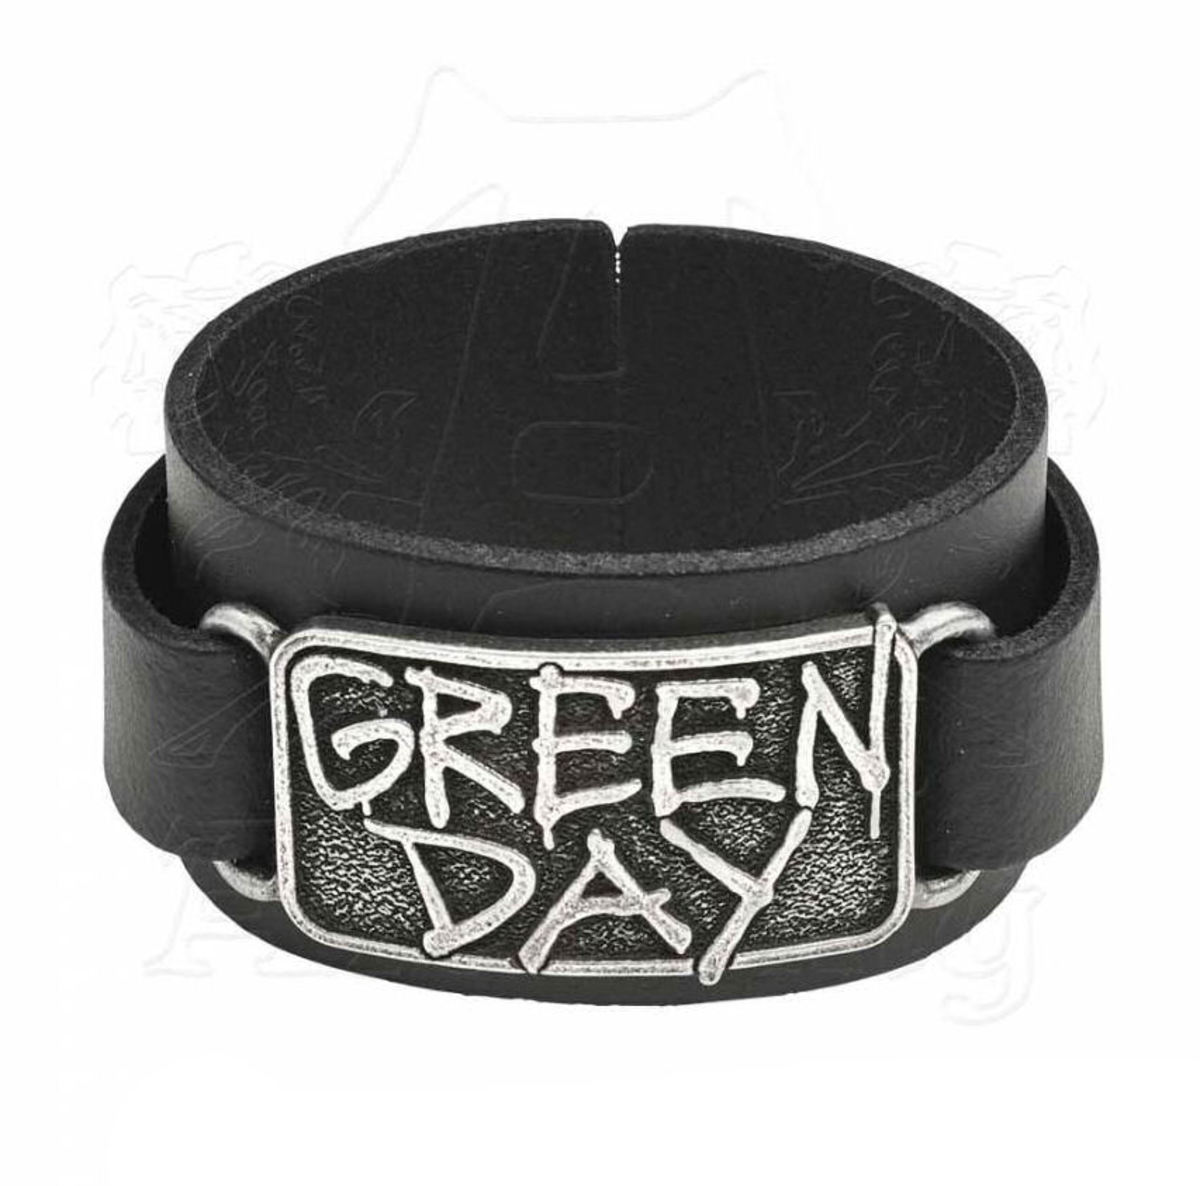 náramek Green Day - ALCHEMY GOTHIC - HRWL449